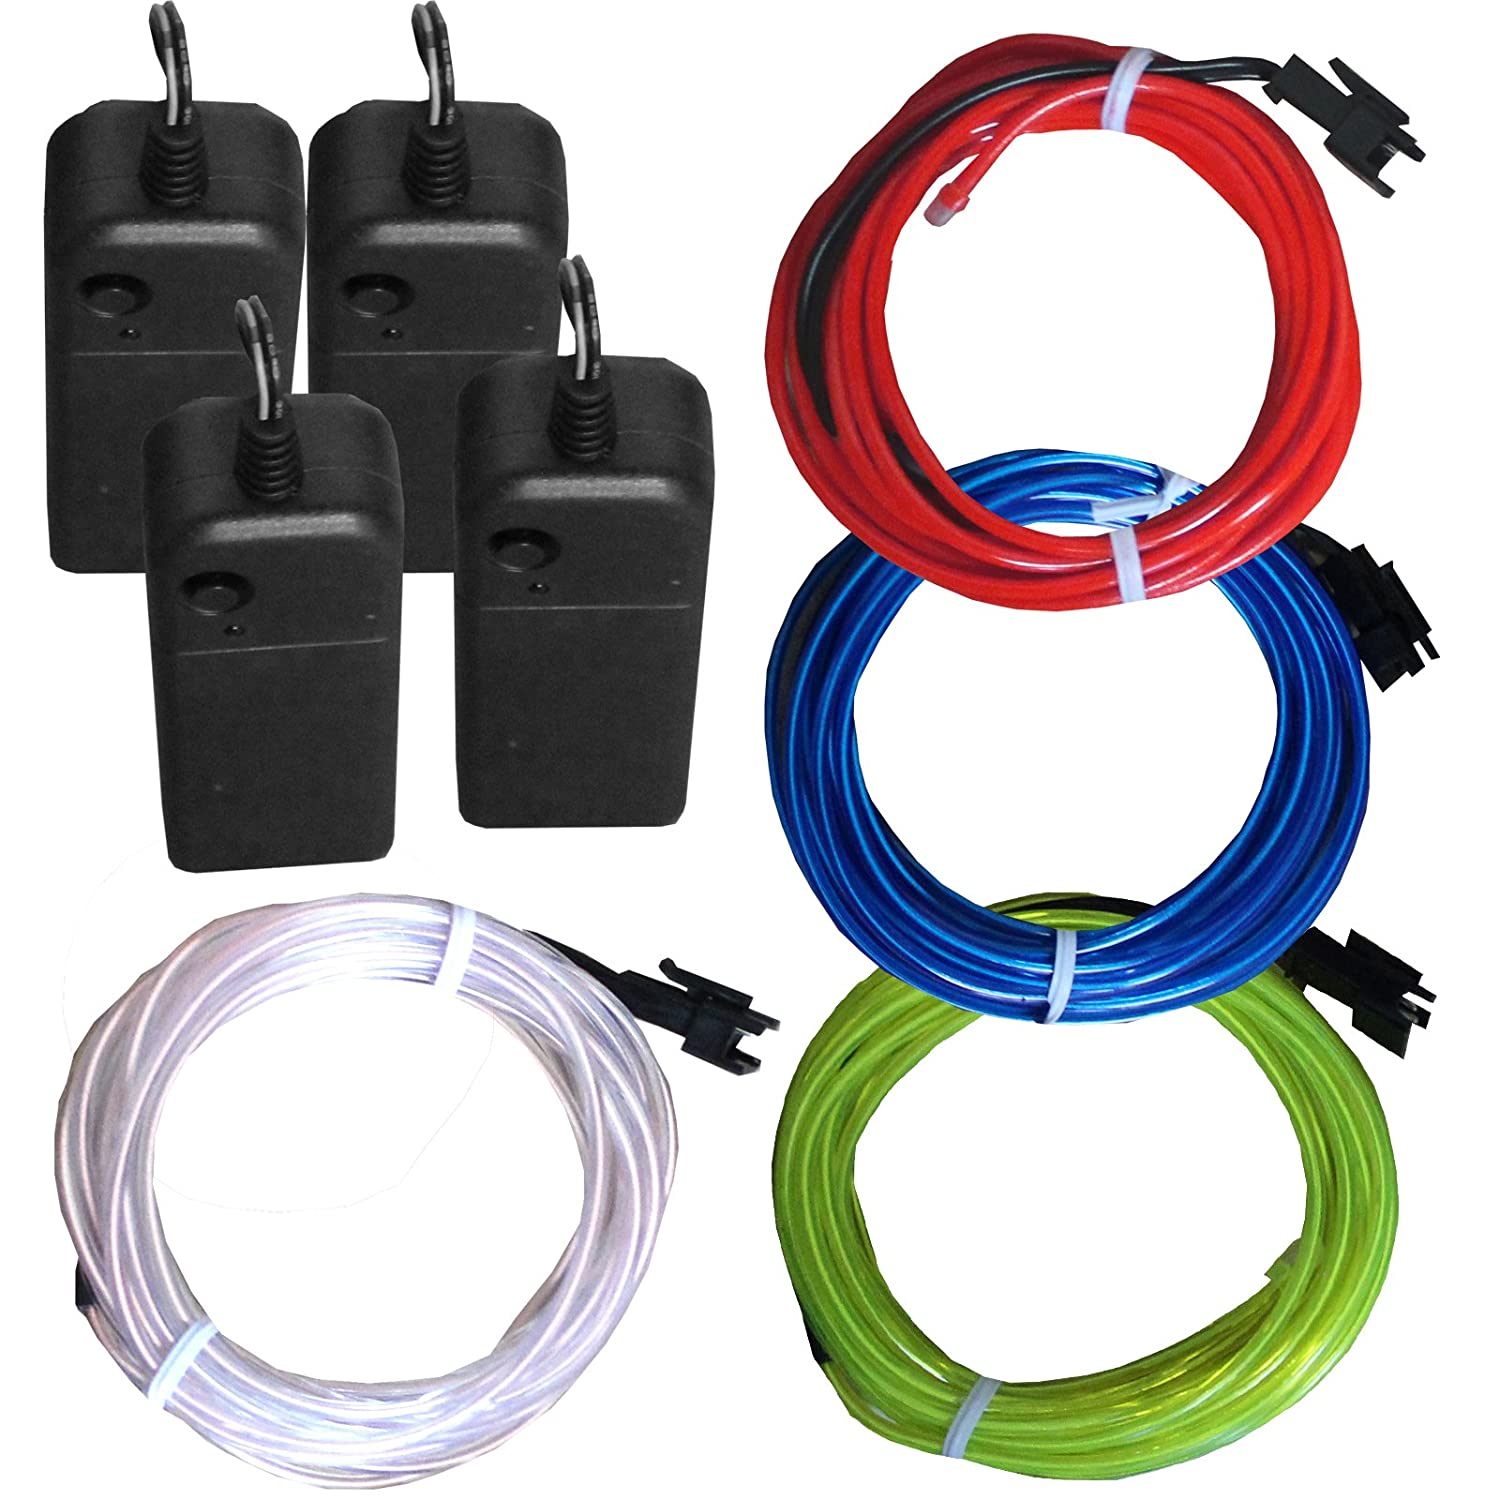 4 Pack TDLTEK Neon Glowing Strobing Electroluminescent Wire El Wire Blue Green Red White 3 Modes Battery Controllers